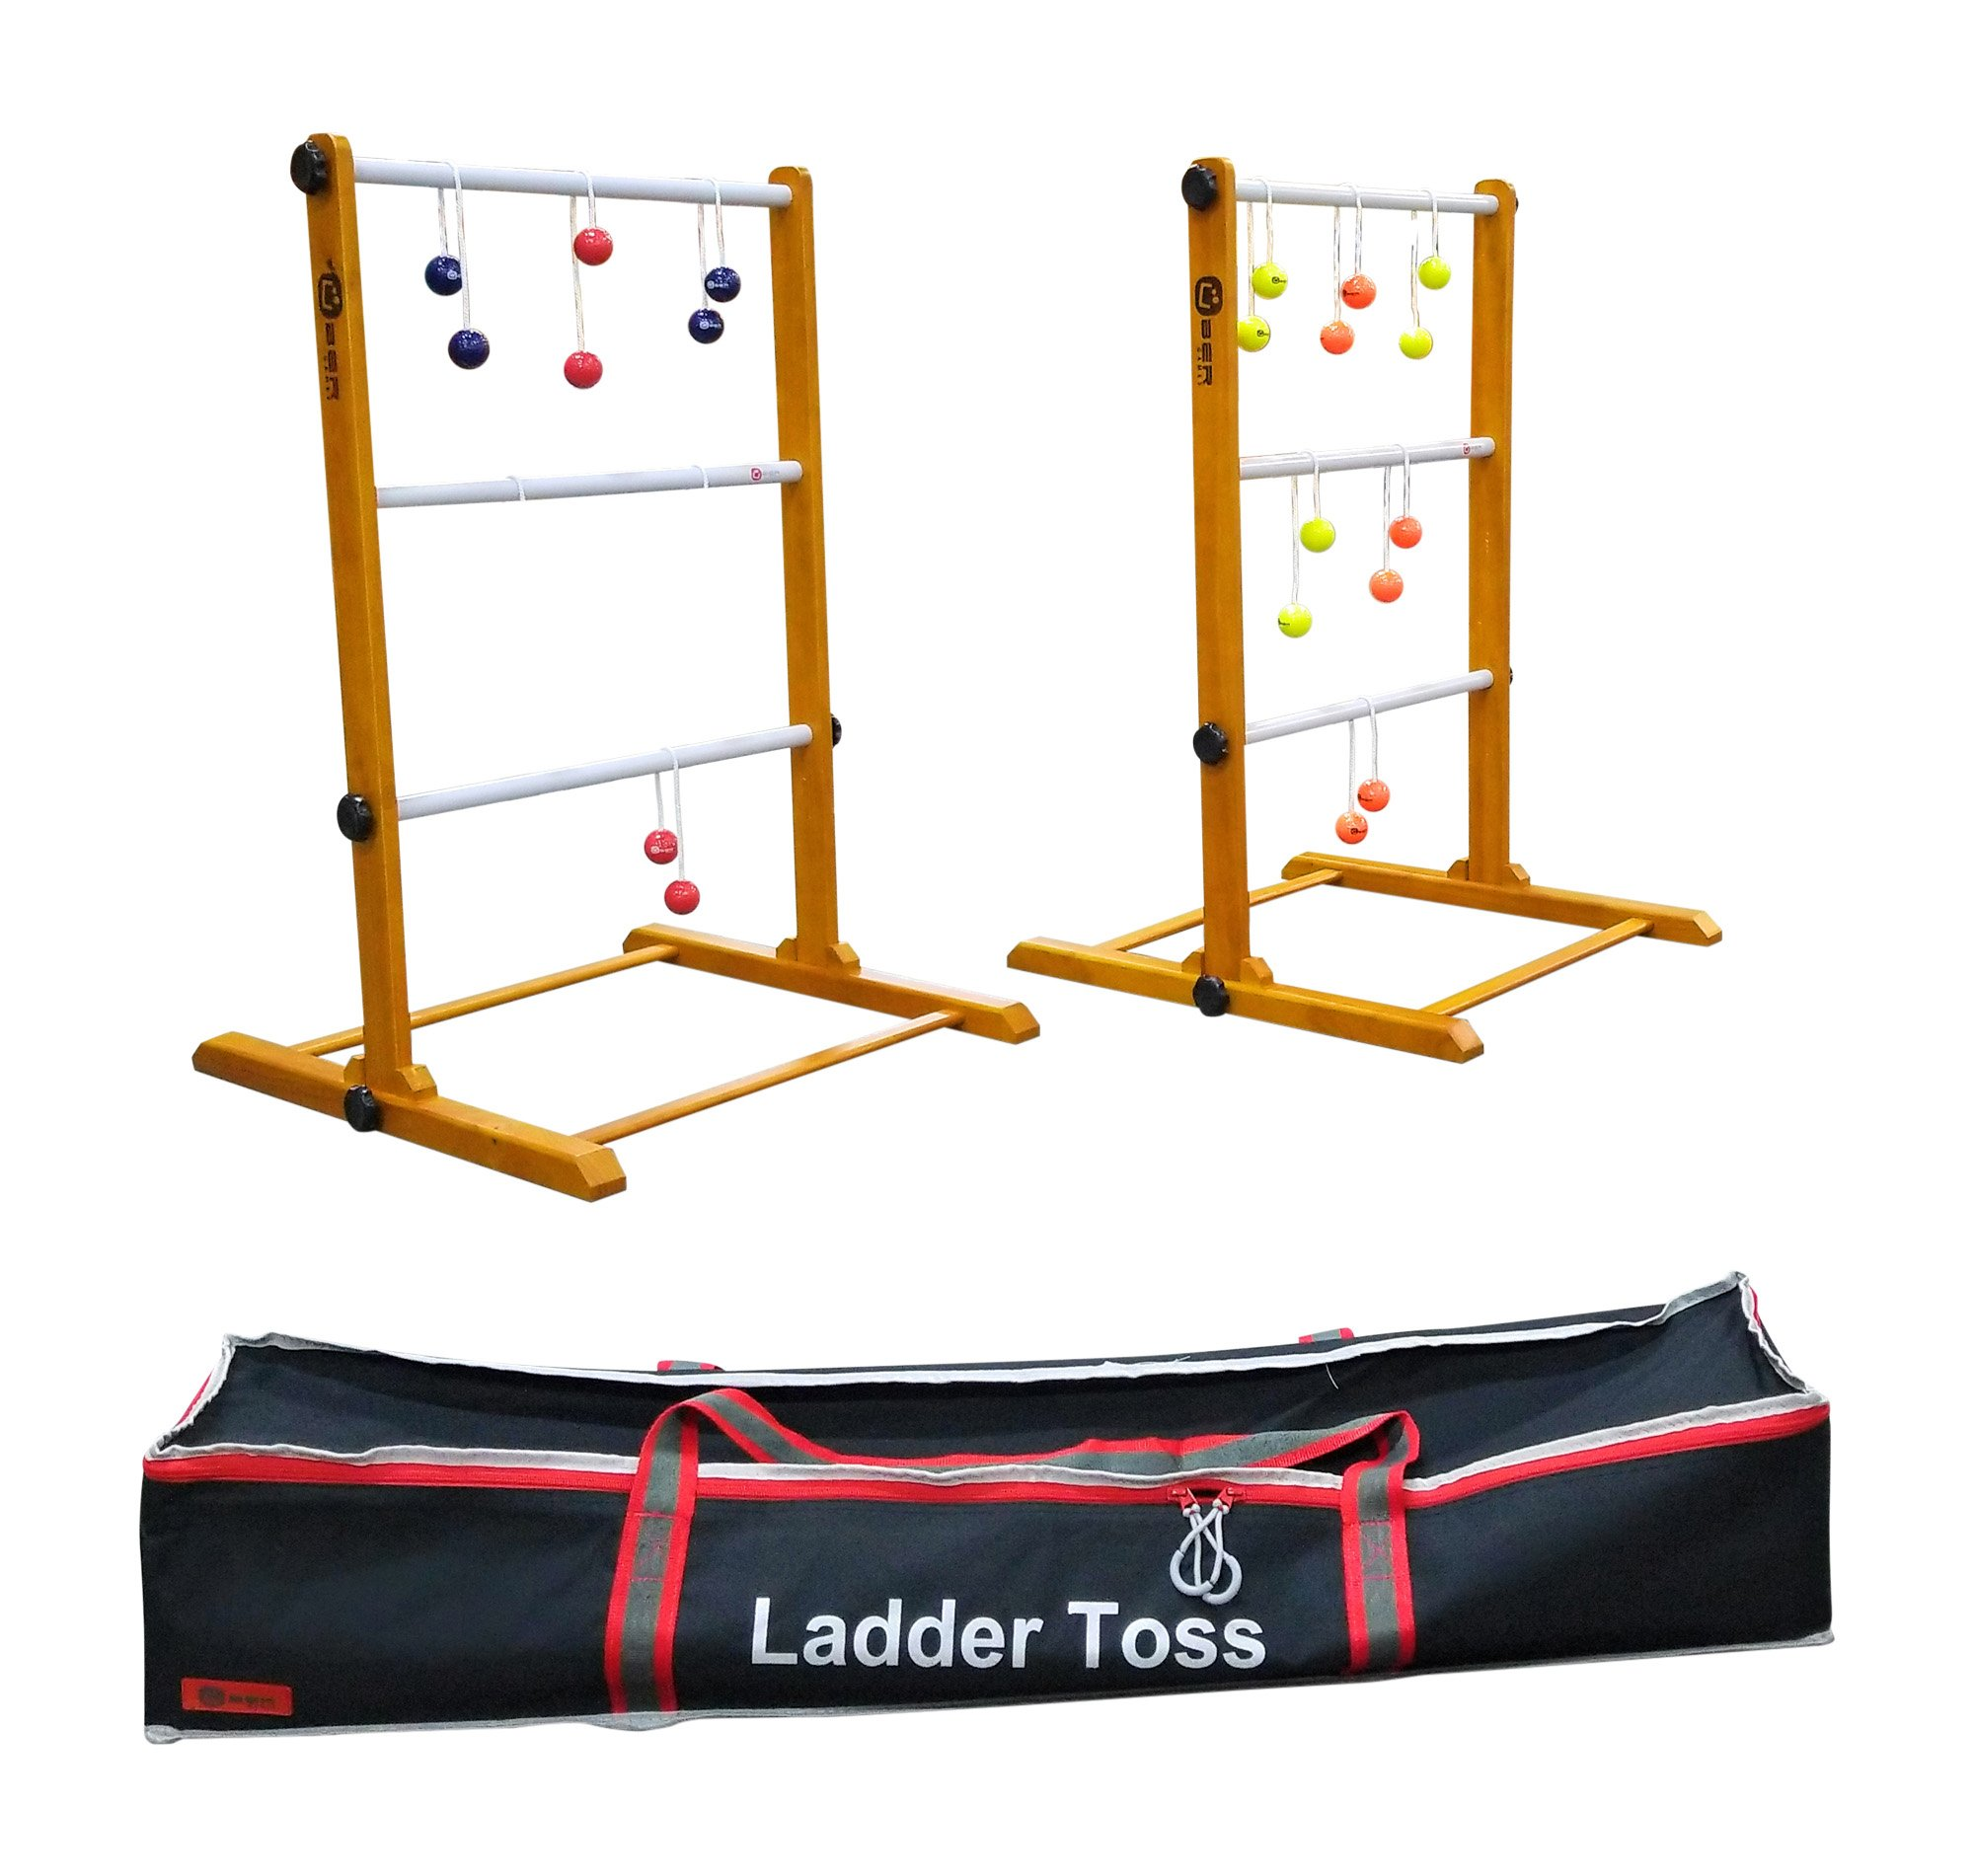 Uber Games Ladder Toss - Double Game - Red, Navy Blue, Orange, and Yellow Bolas by Uber Games